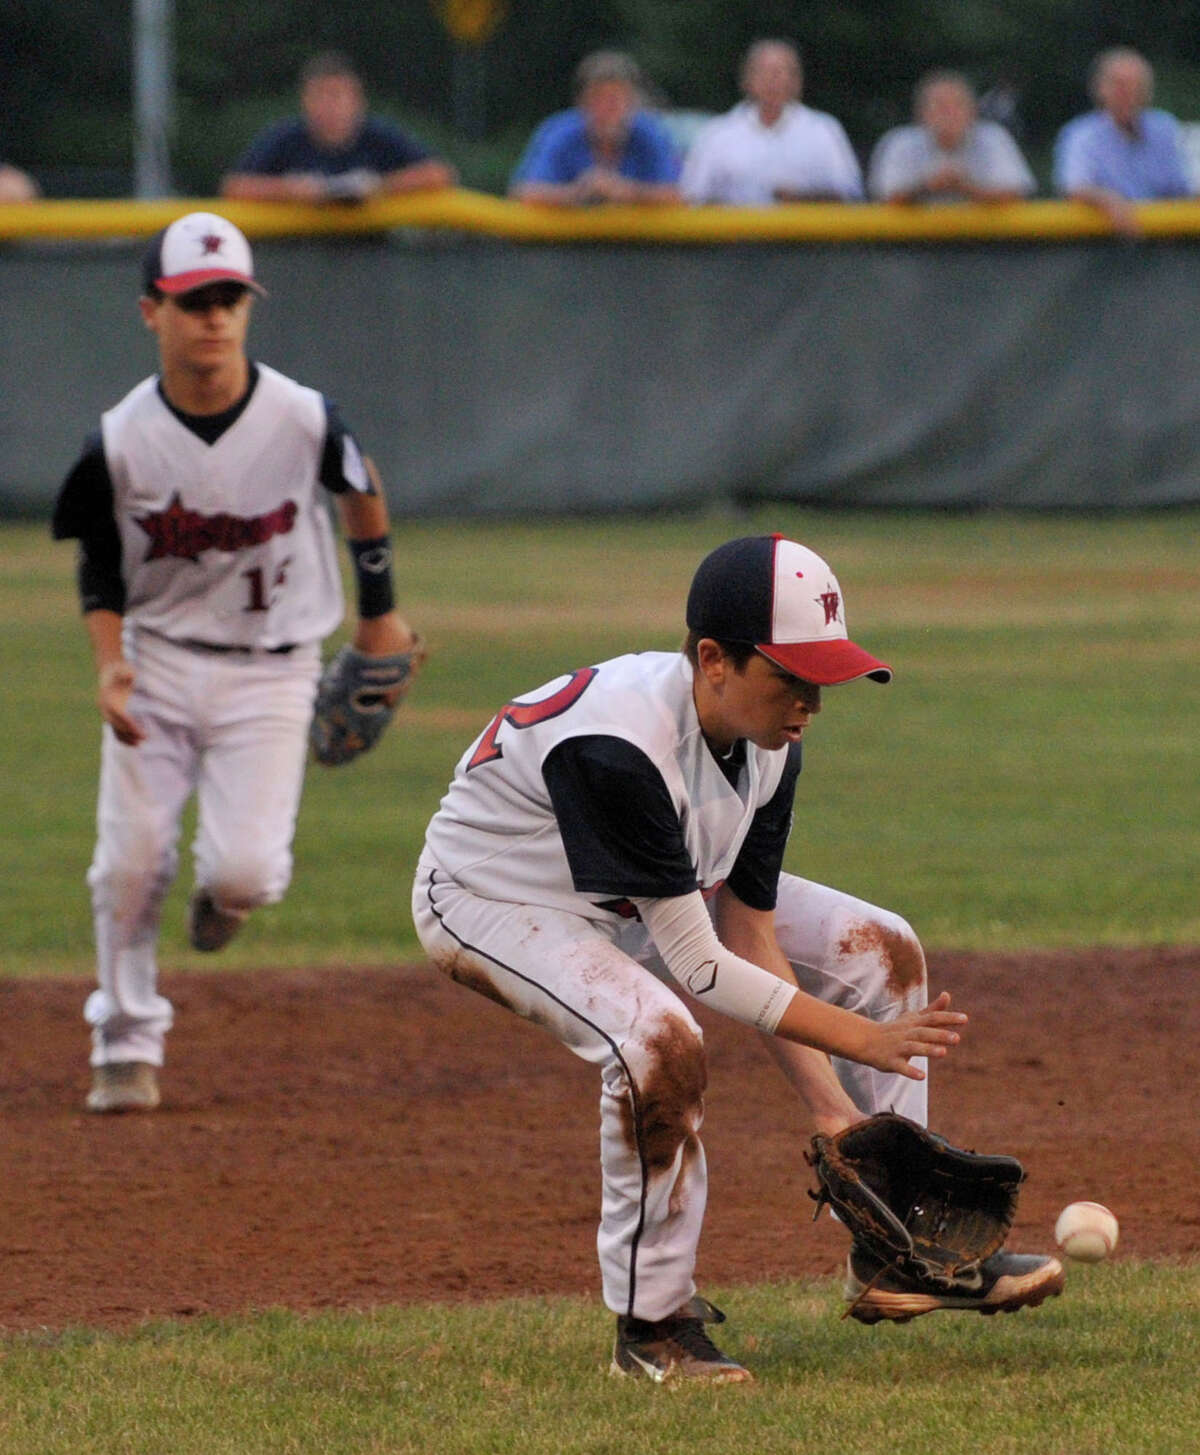 Westport third baseman Alex Reiner fields a ball during their Section 1 Little League Championship game against Edgewood at Scalzi Park in Stamford on Tuesday, July 23, 2013.